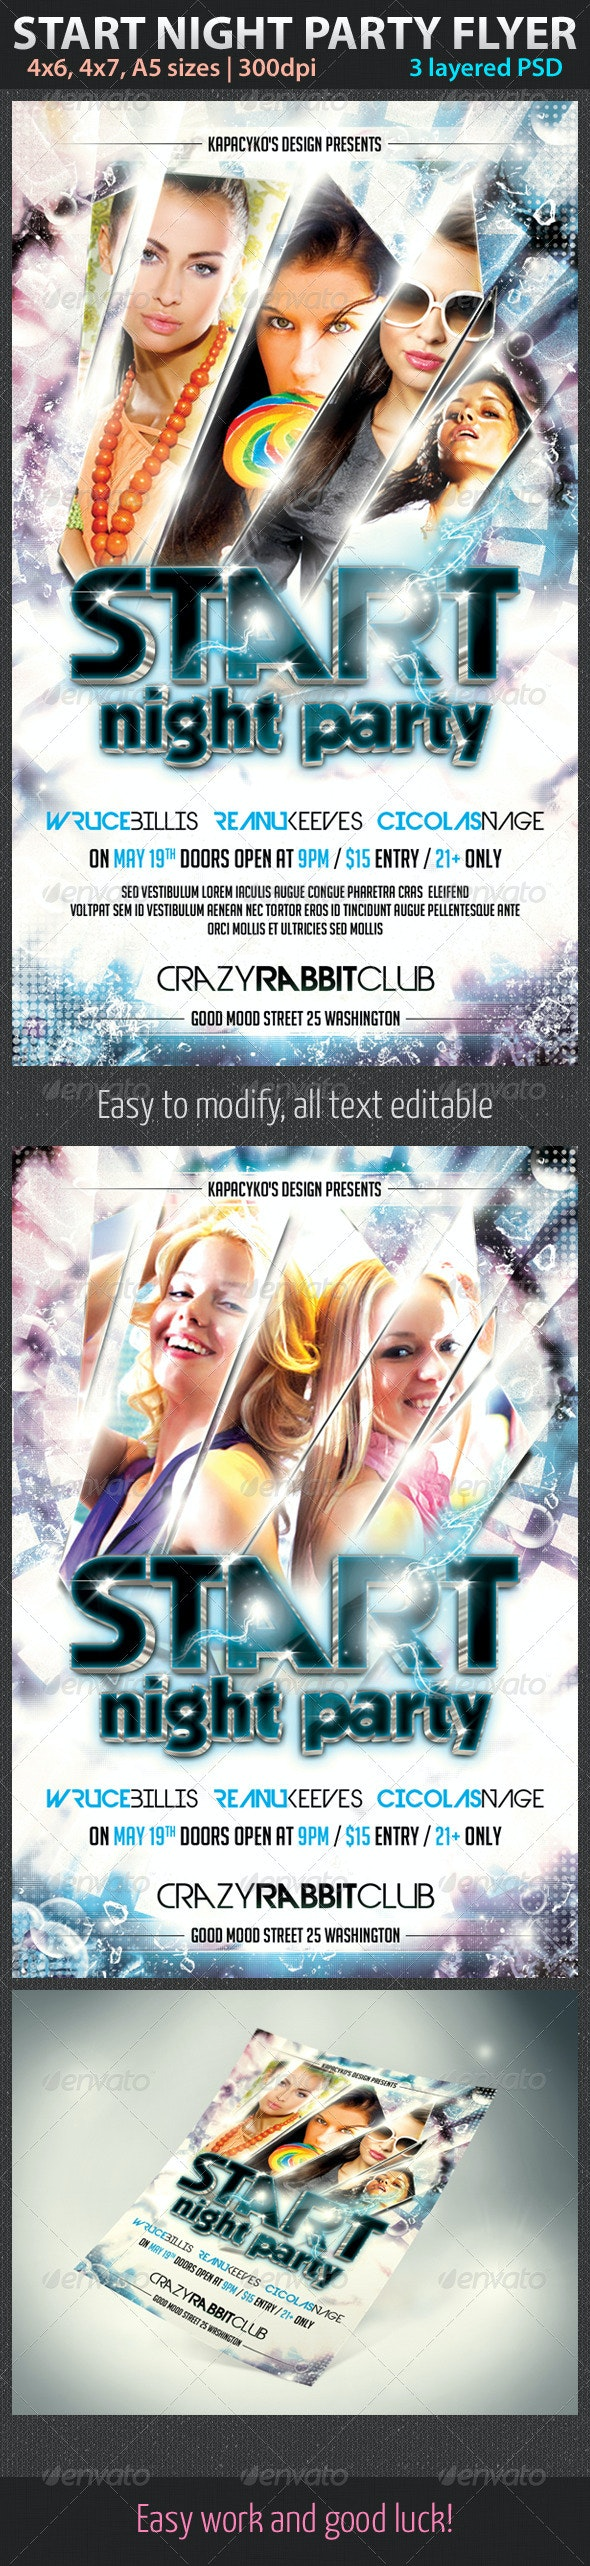 Start Night Party Flyer - Clubs & Parties Events